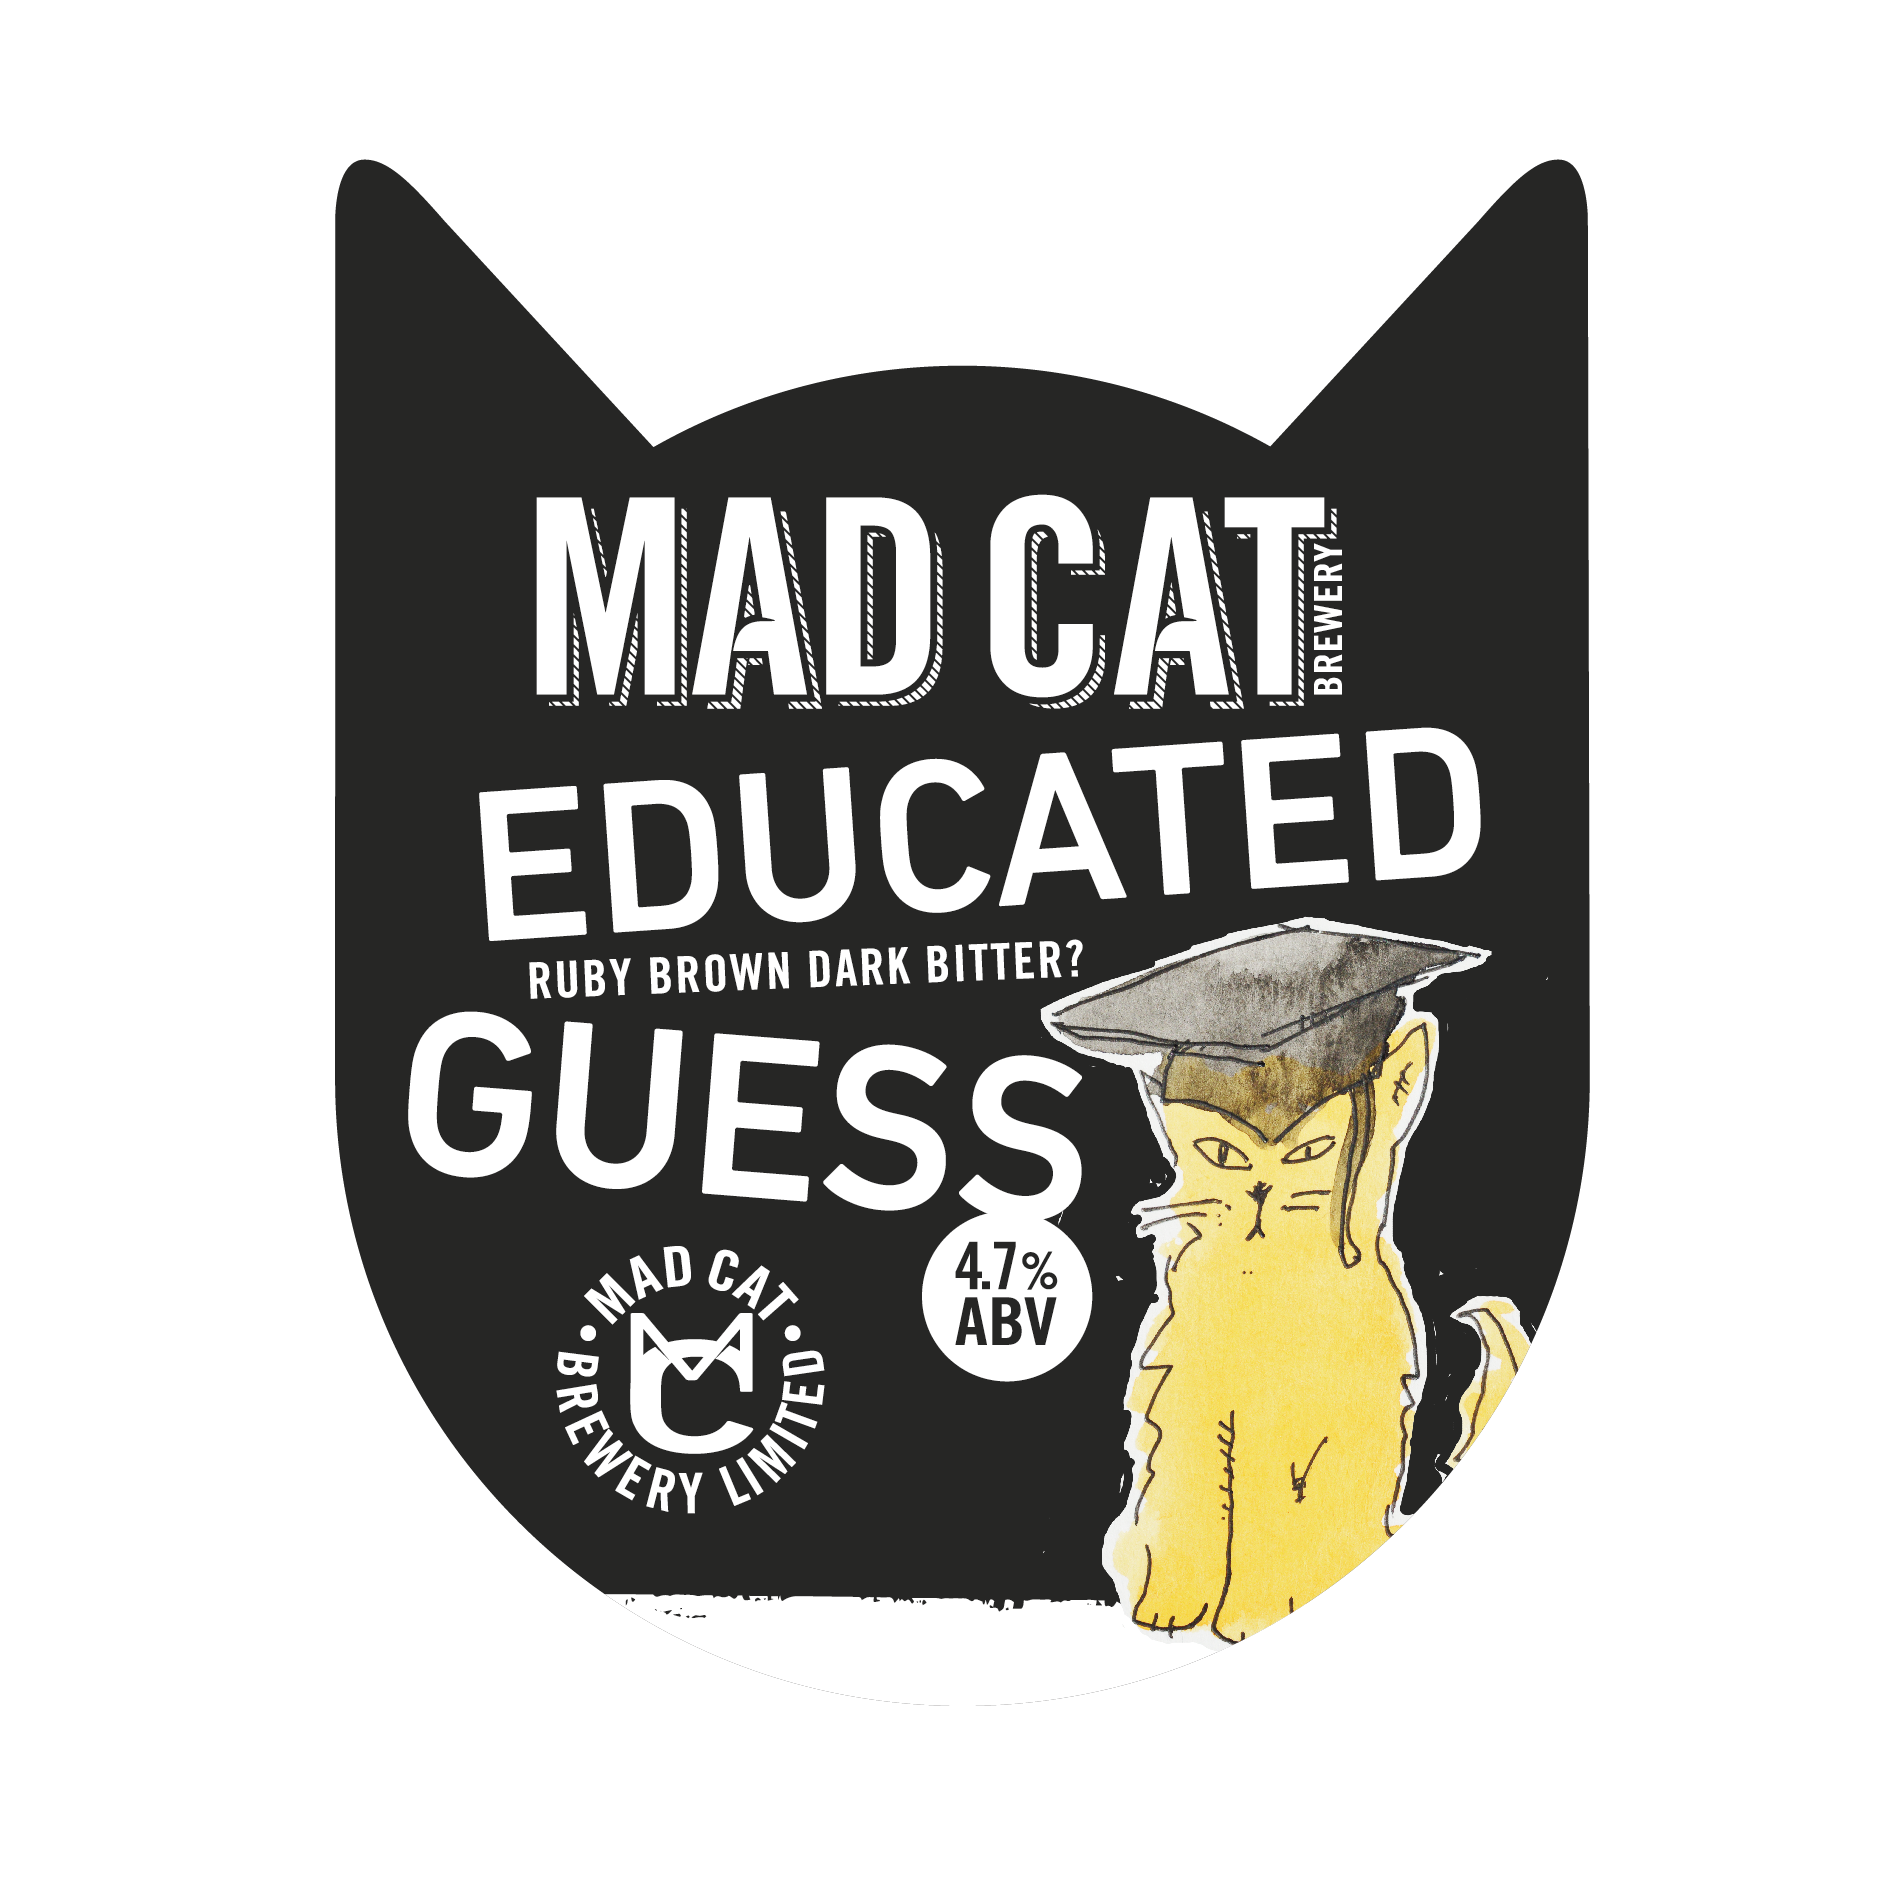 Educated Guess pump clip seasonal